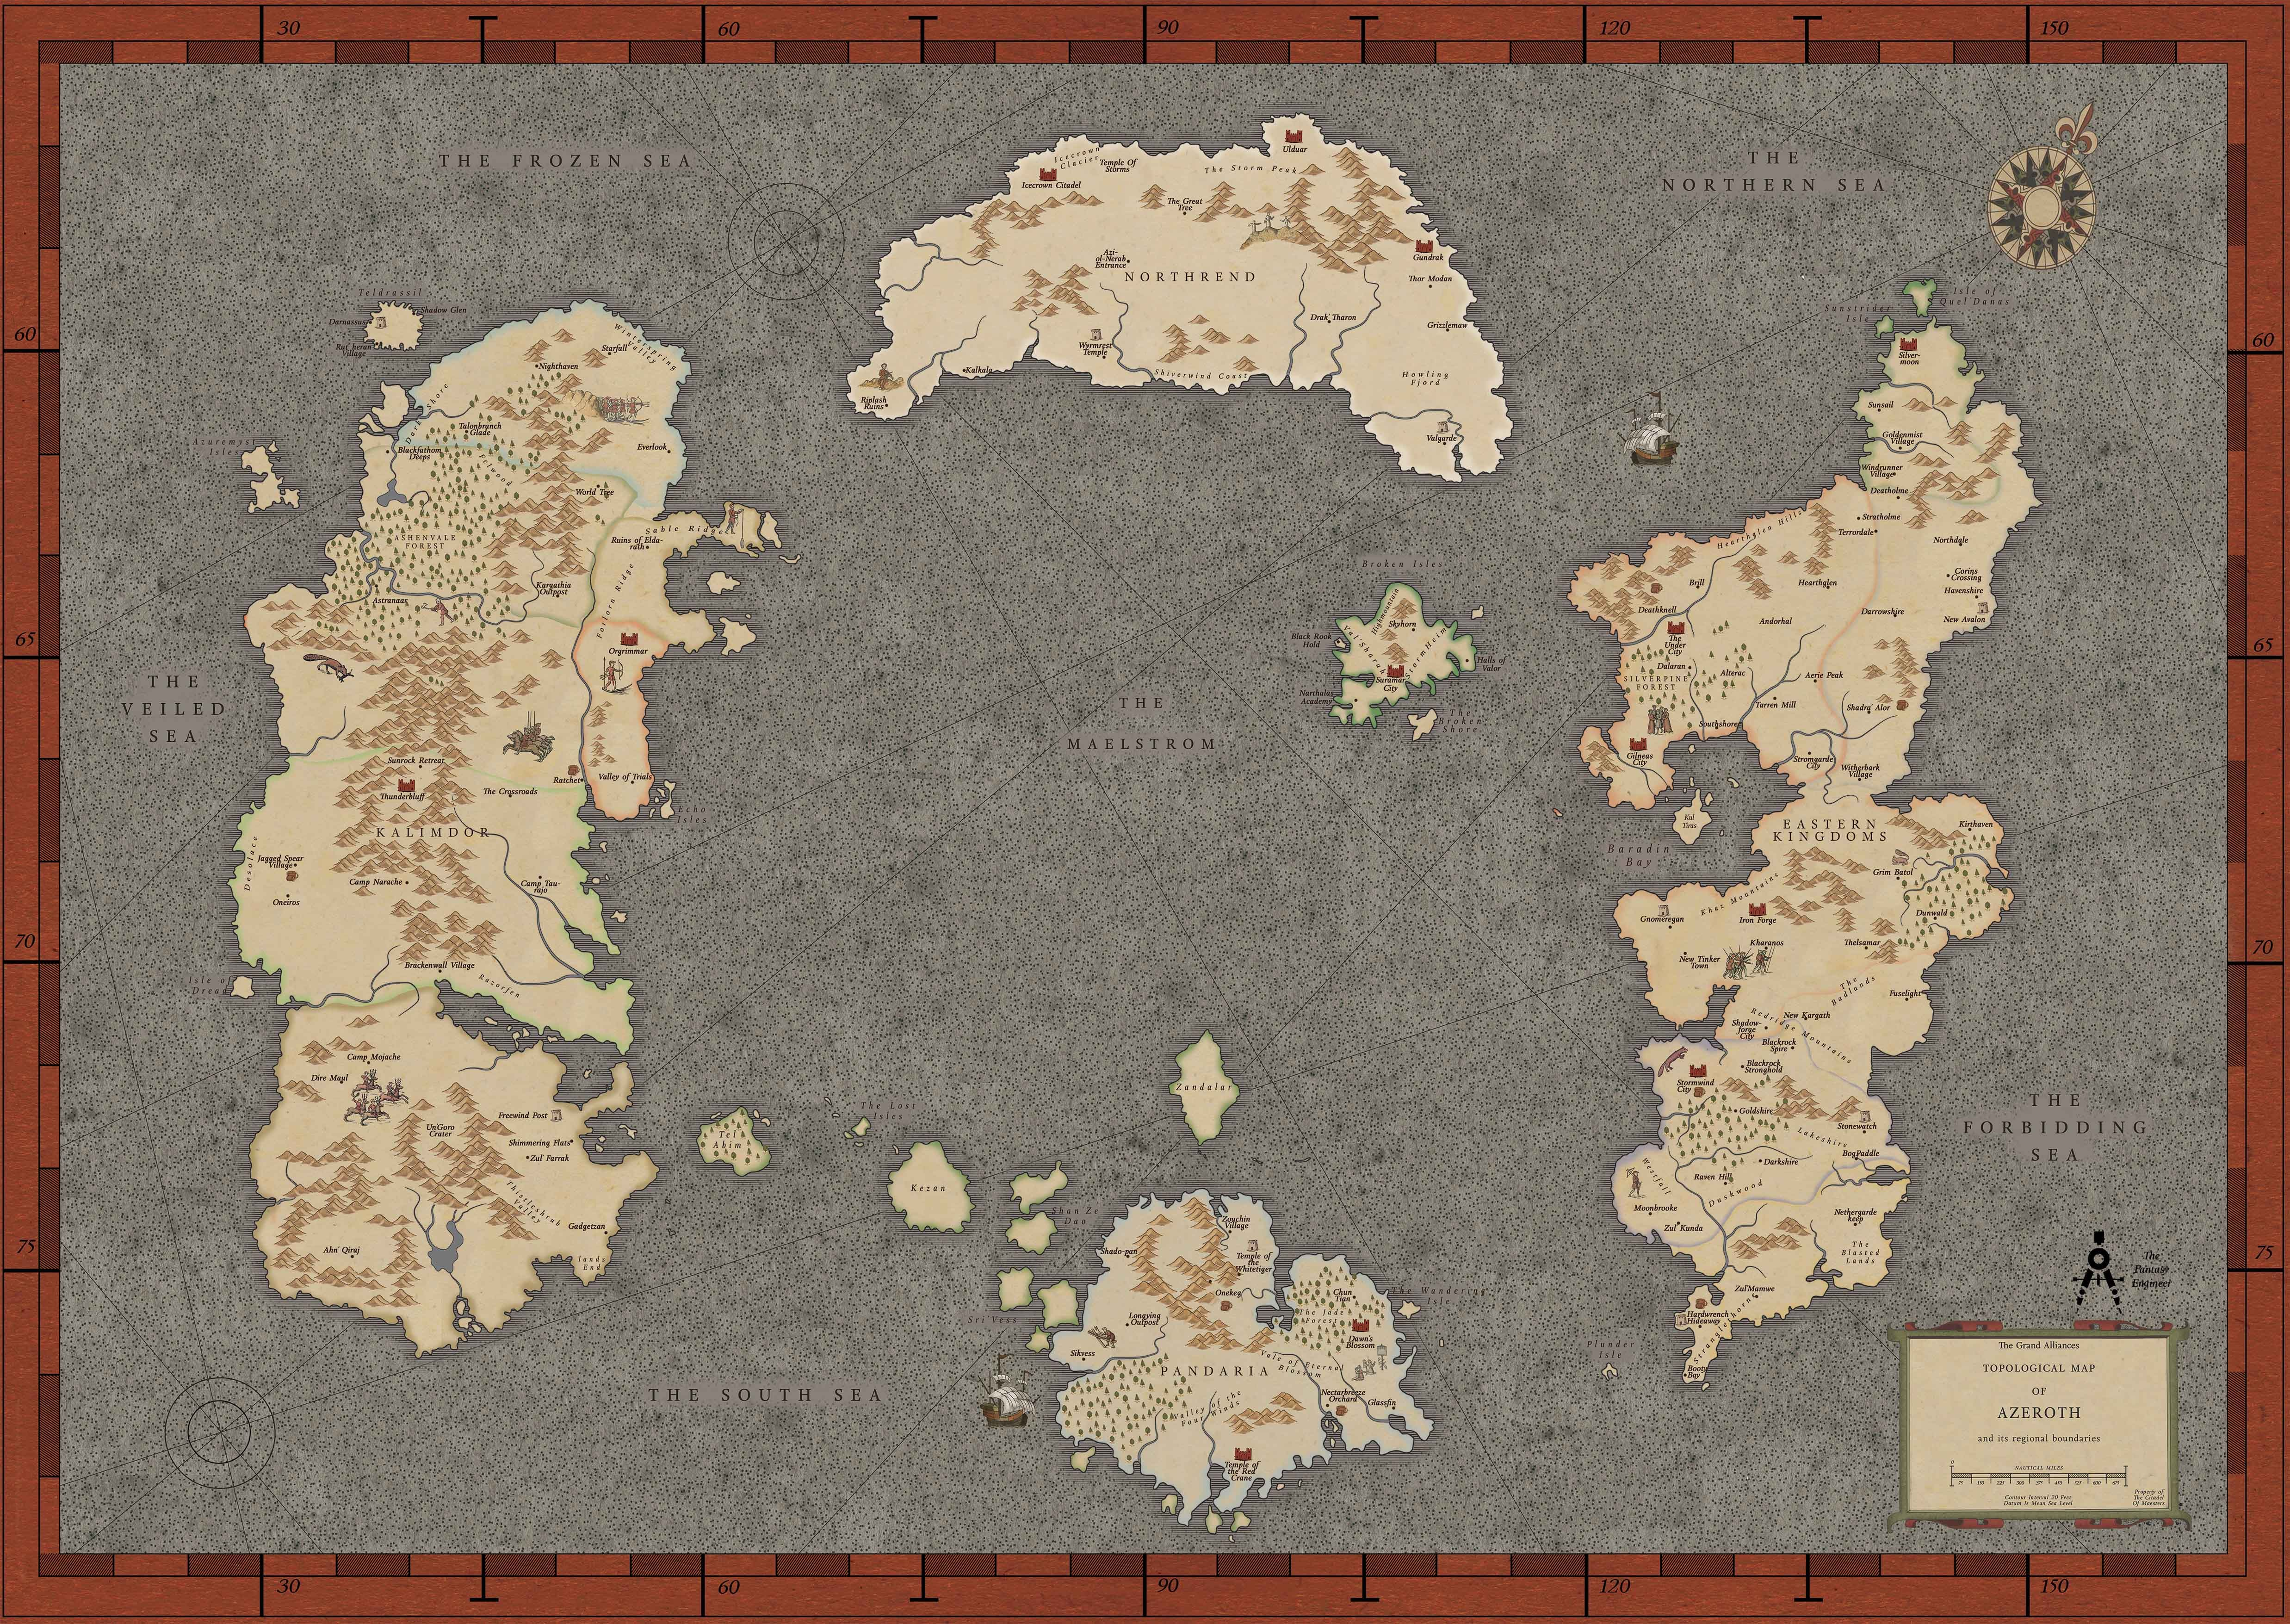 World Map In Renaissance. My second revision of the full Azeroth map Renaissance style  worldofwarcraft blizzard Hearthstone